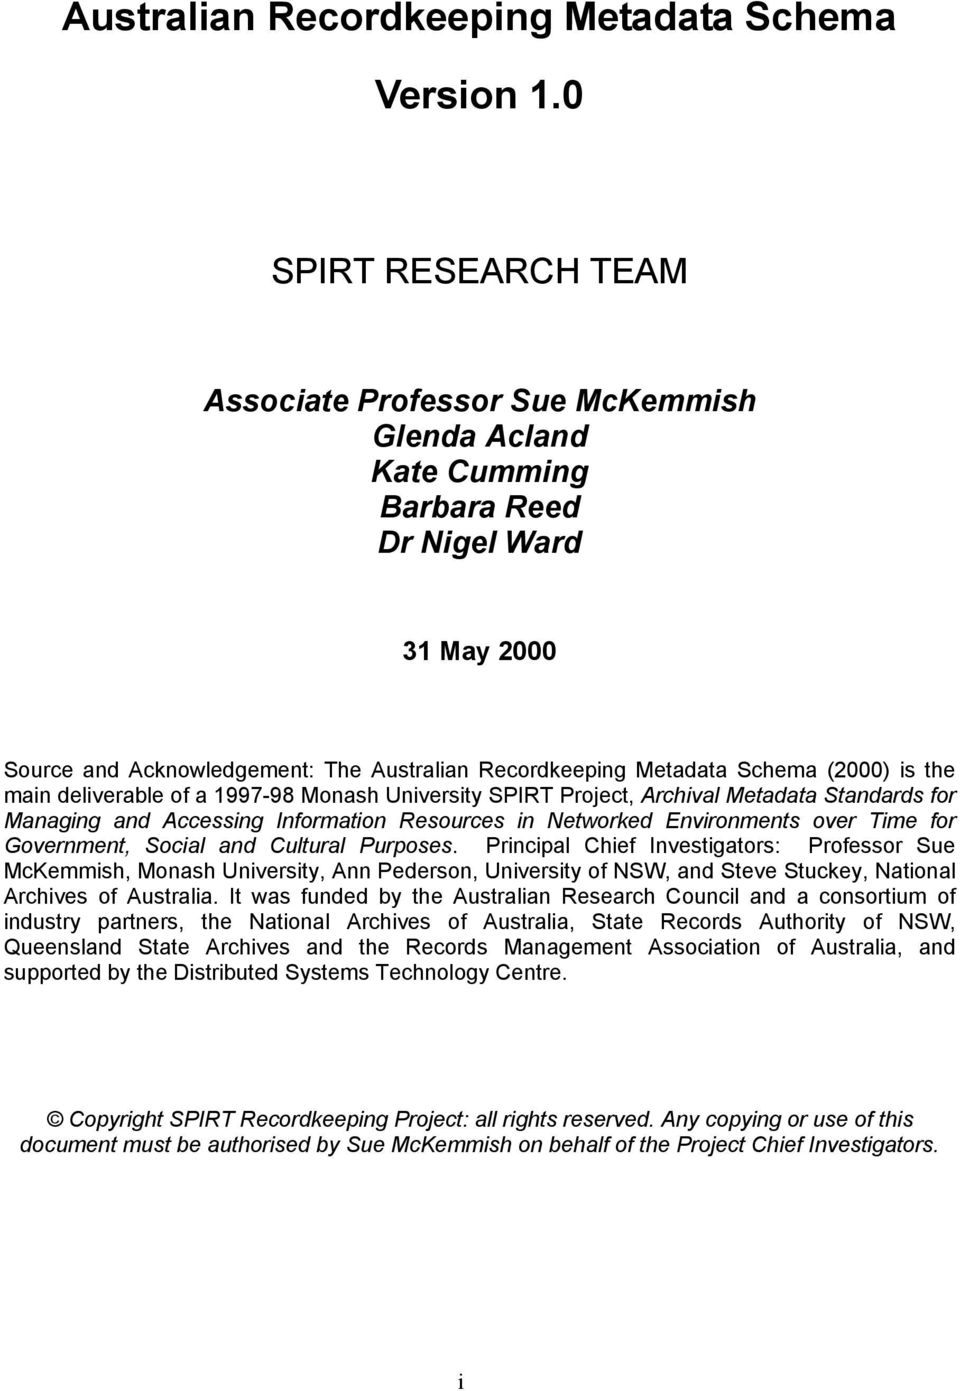 (2000) is the main deliverable of a 1997-98 Monash University SPIRT Project, Archival Metadata Standards for Managing and Accessing Information Resources in Networked Environments over Time for